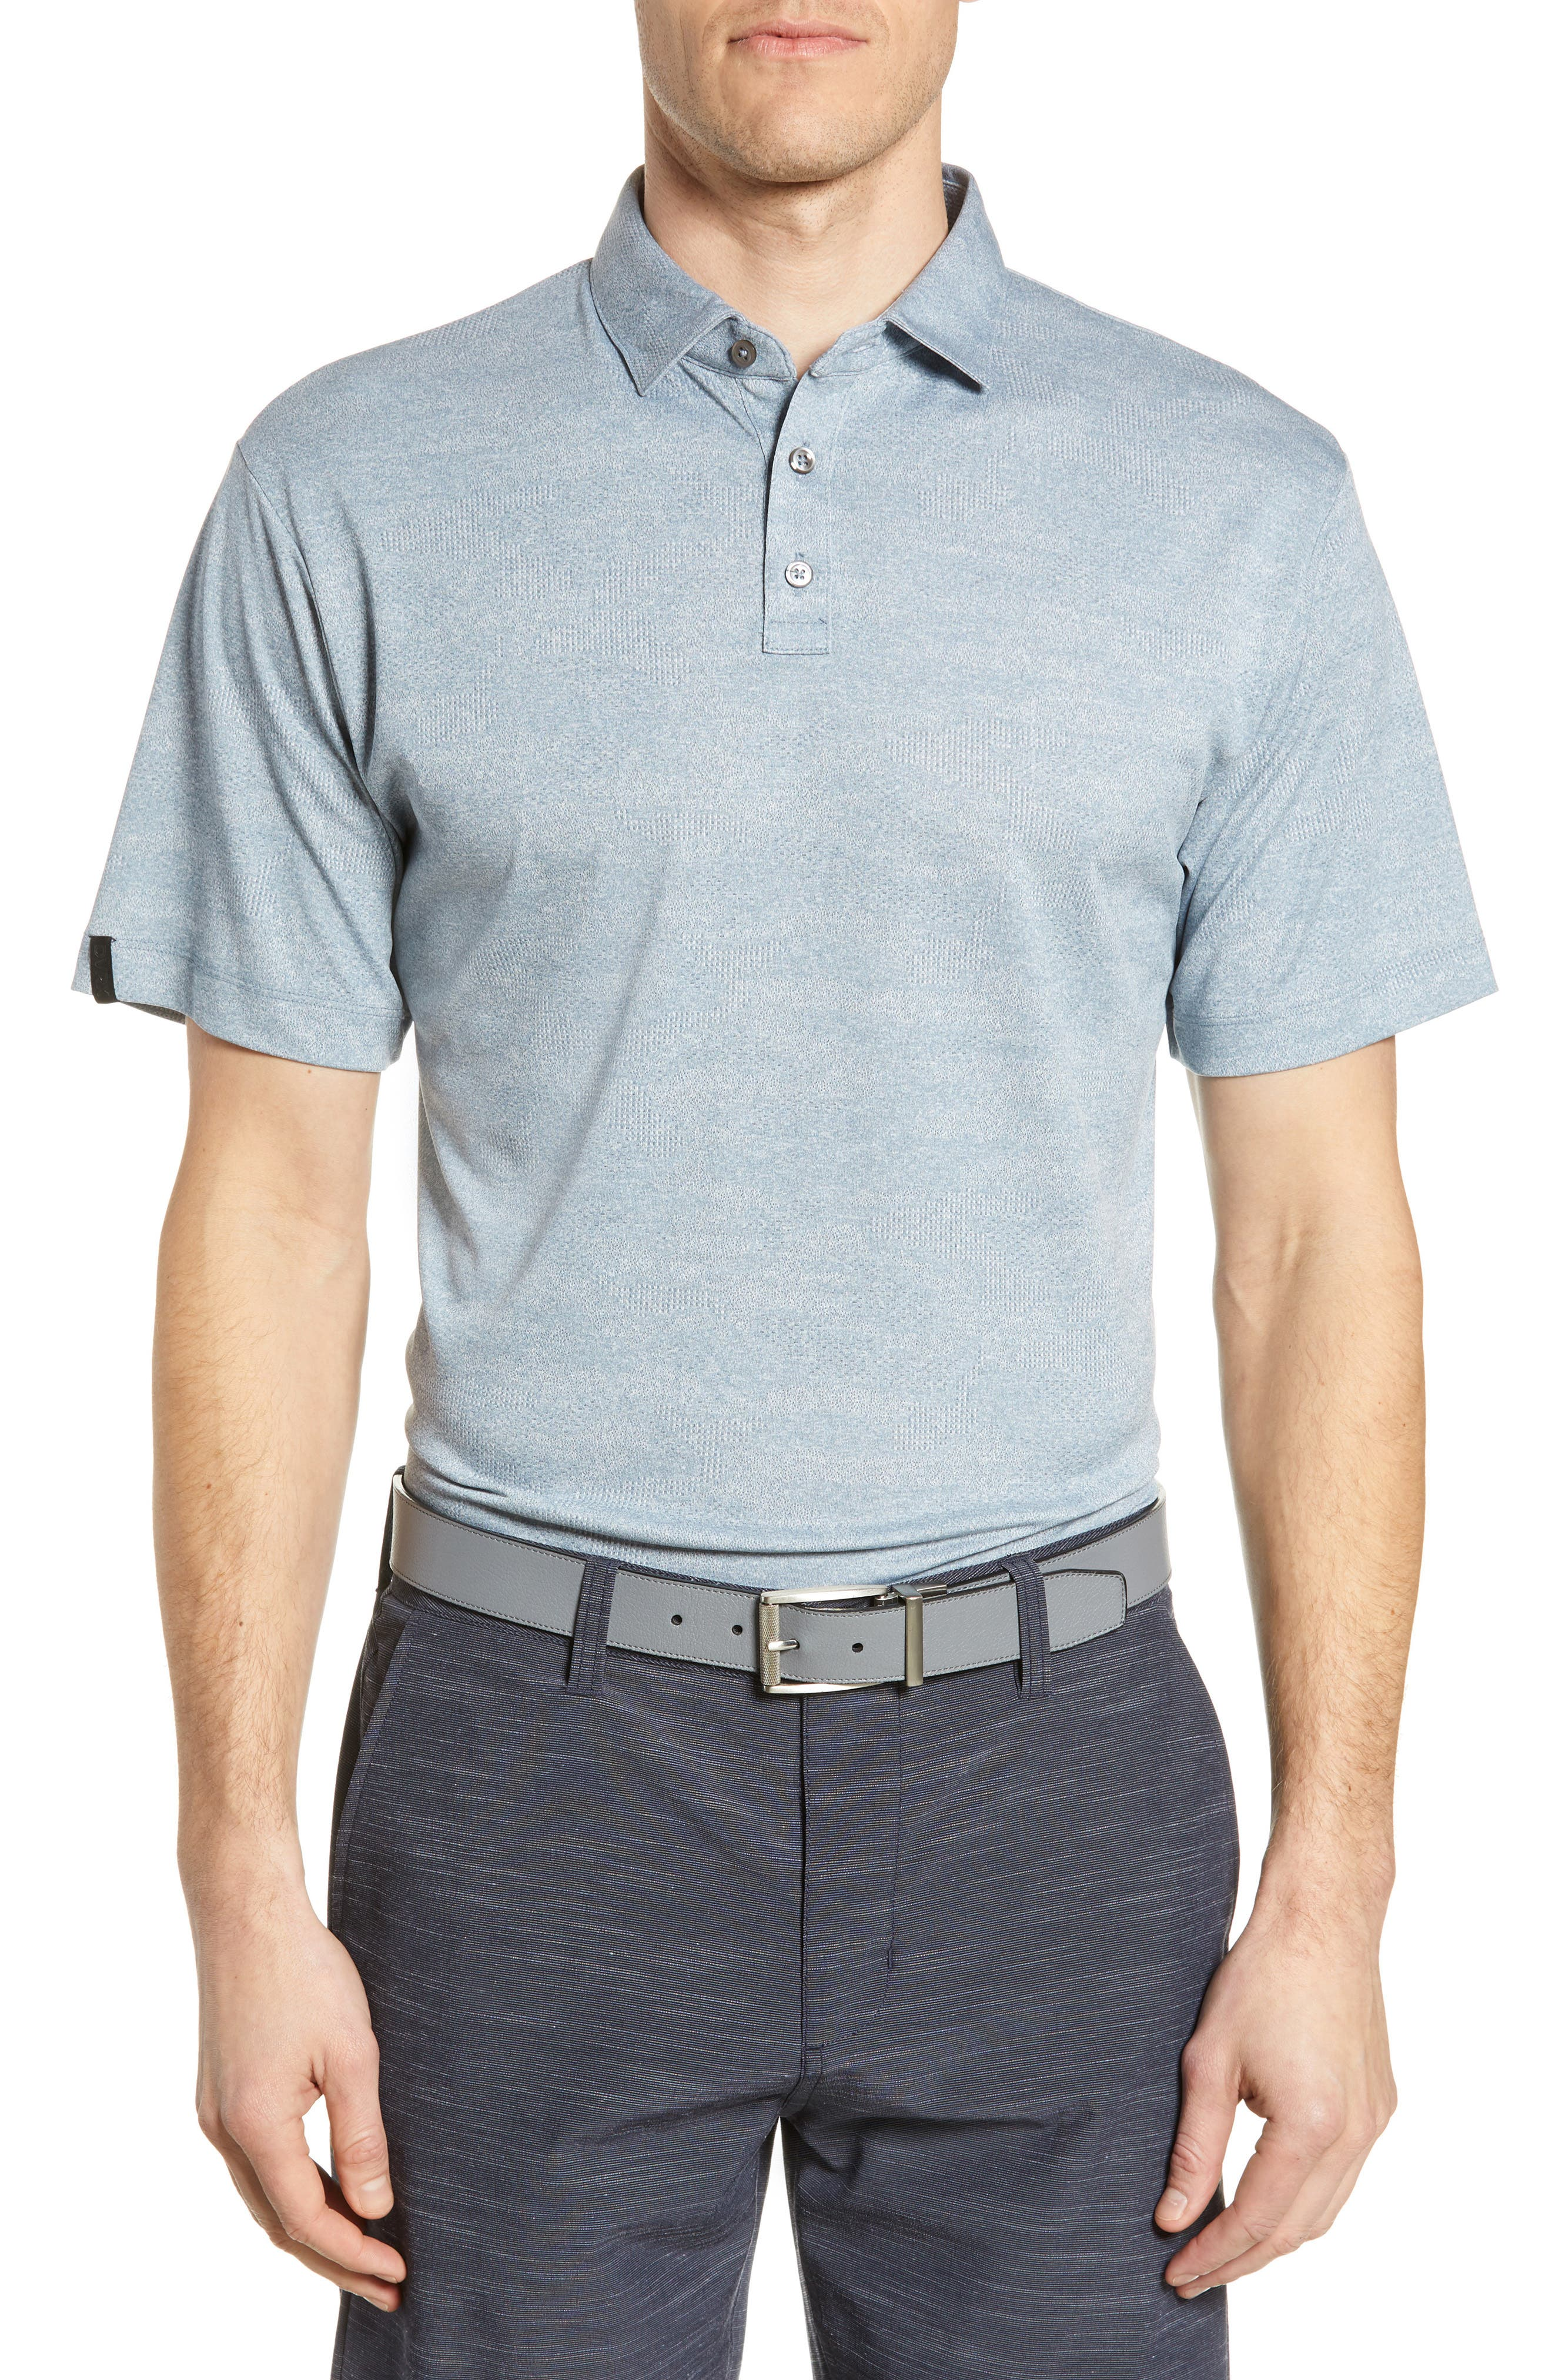 c08d5faf Men's Polo Shirts - Country / Outdoors Clothing